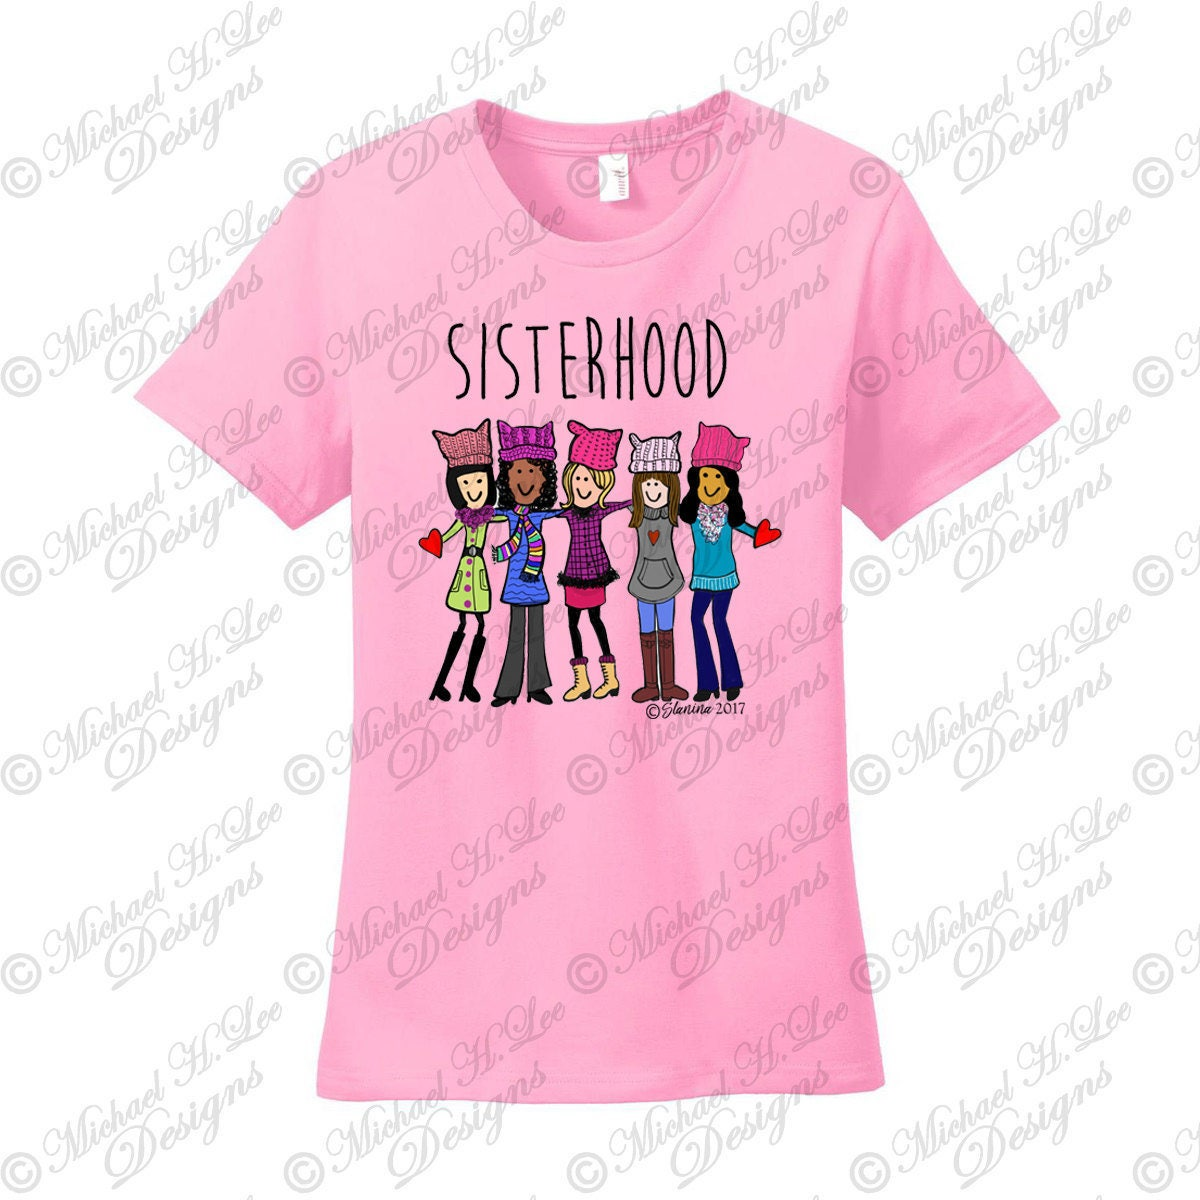 Sisterhood T Shirt March On Dc T Shirt March For Truth Etsy